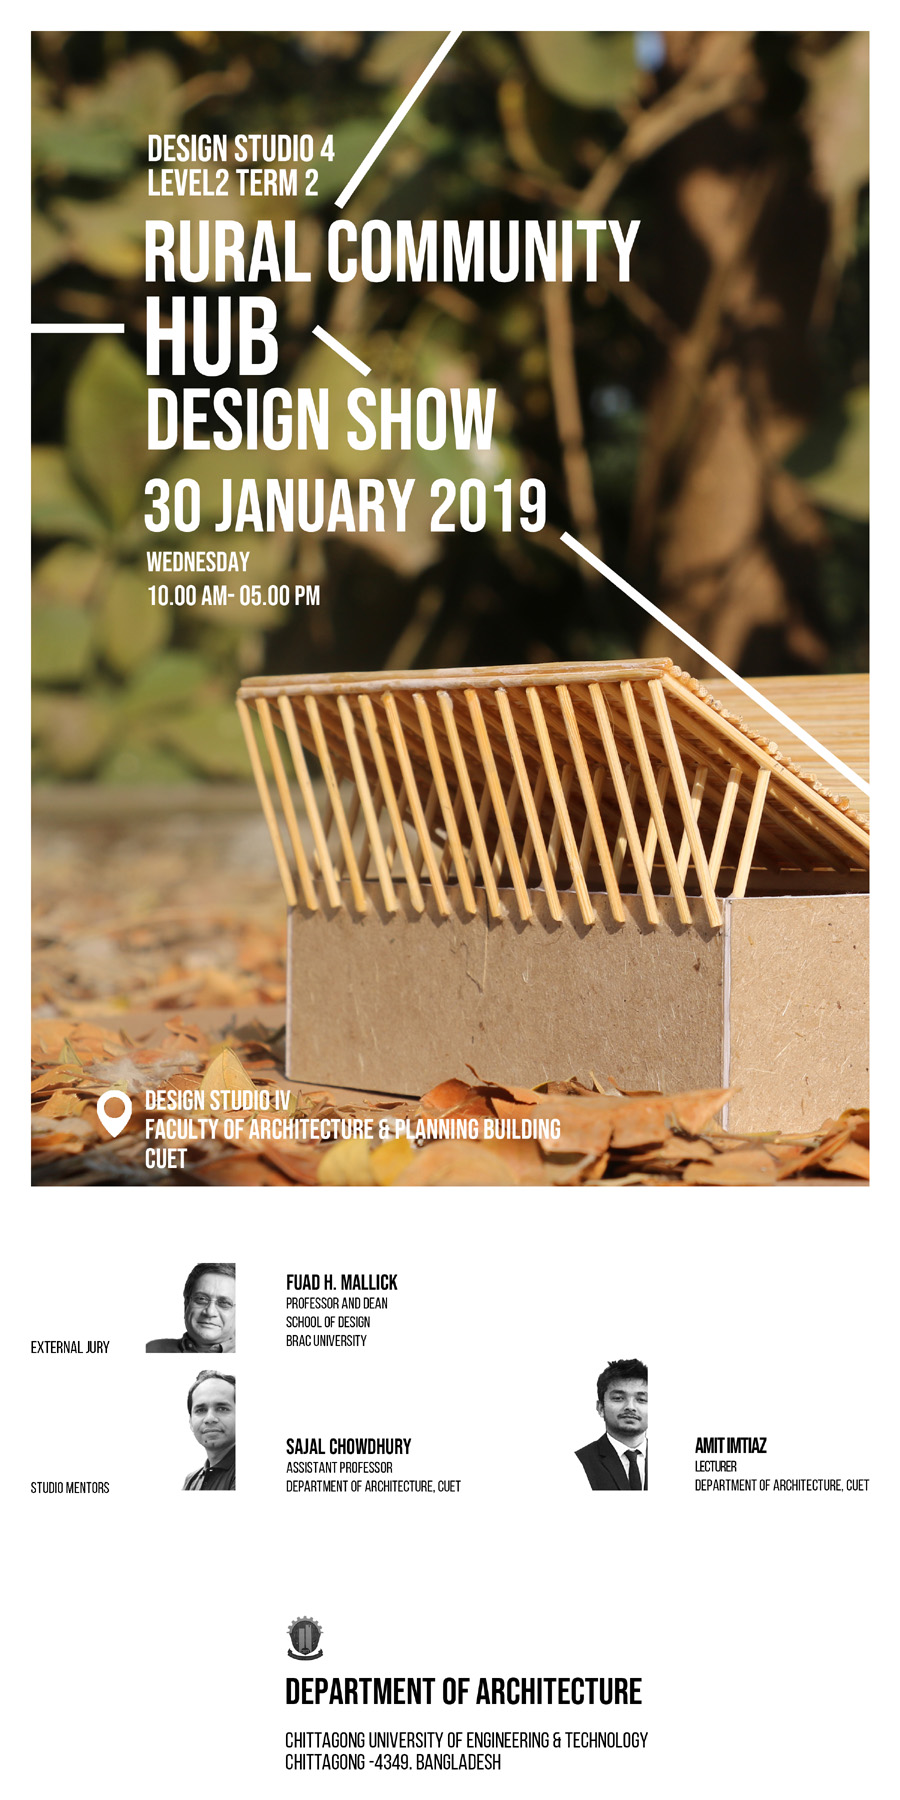 Rural Community Hub Design Show 2019 | courtesy: Dept of Architecture, CUET